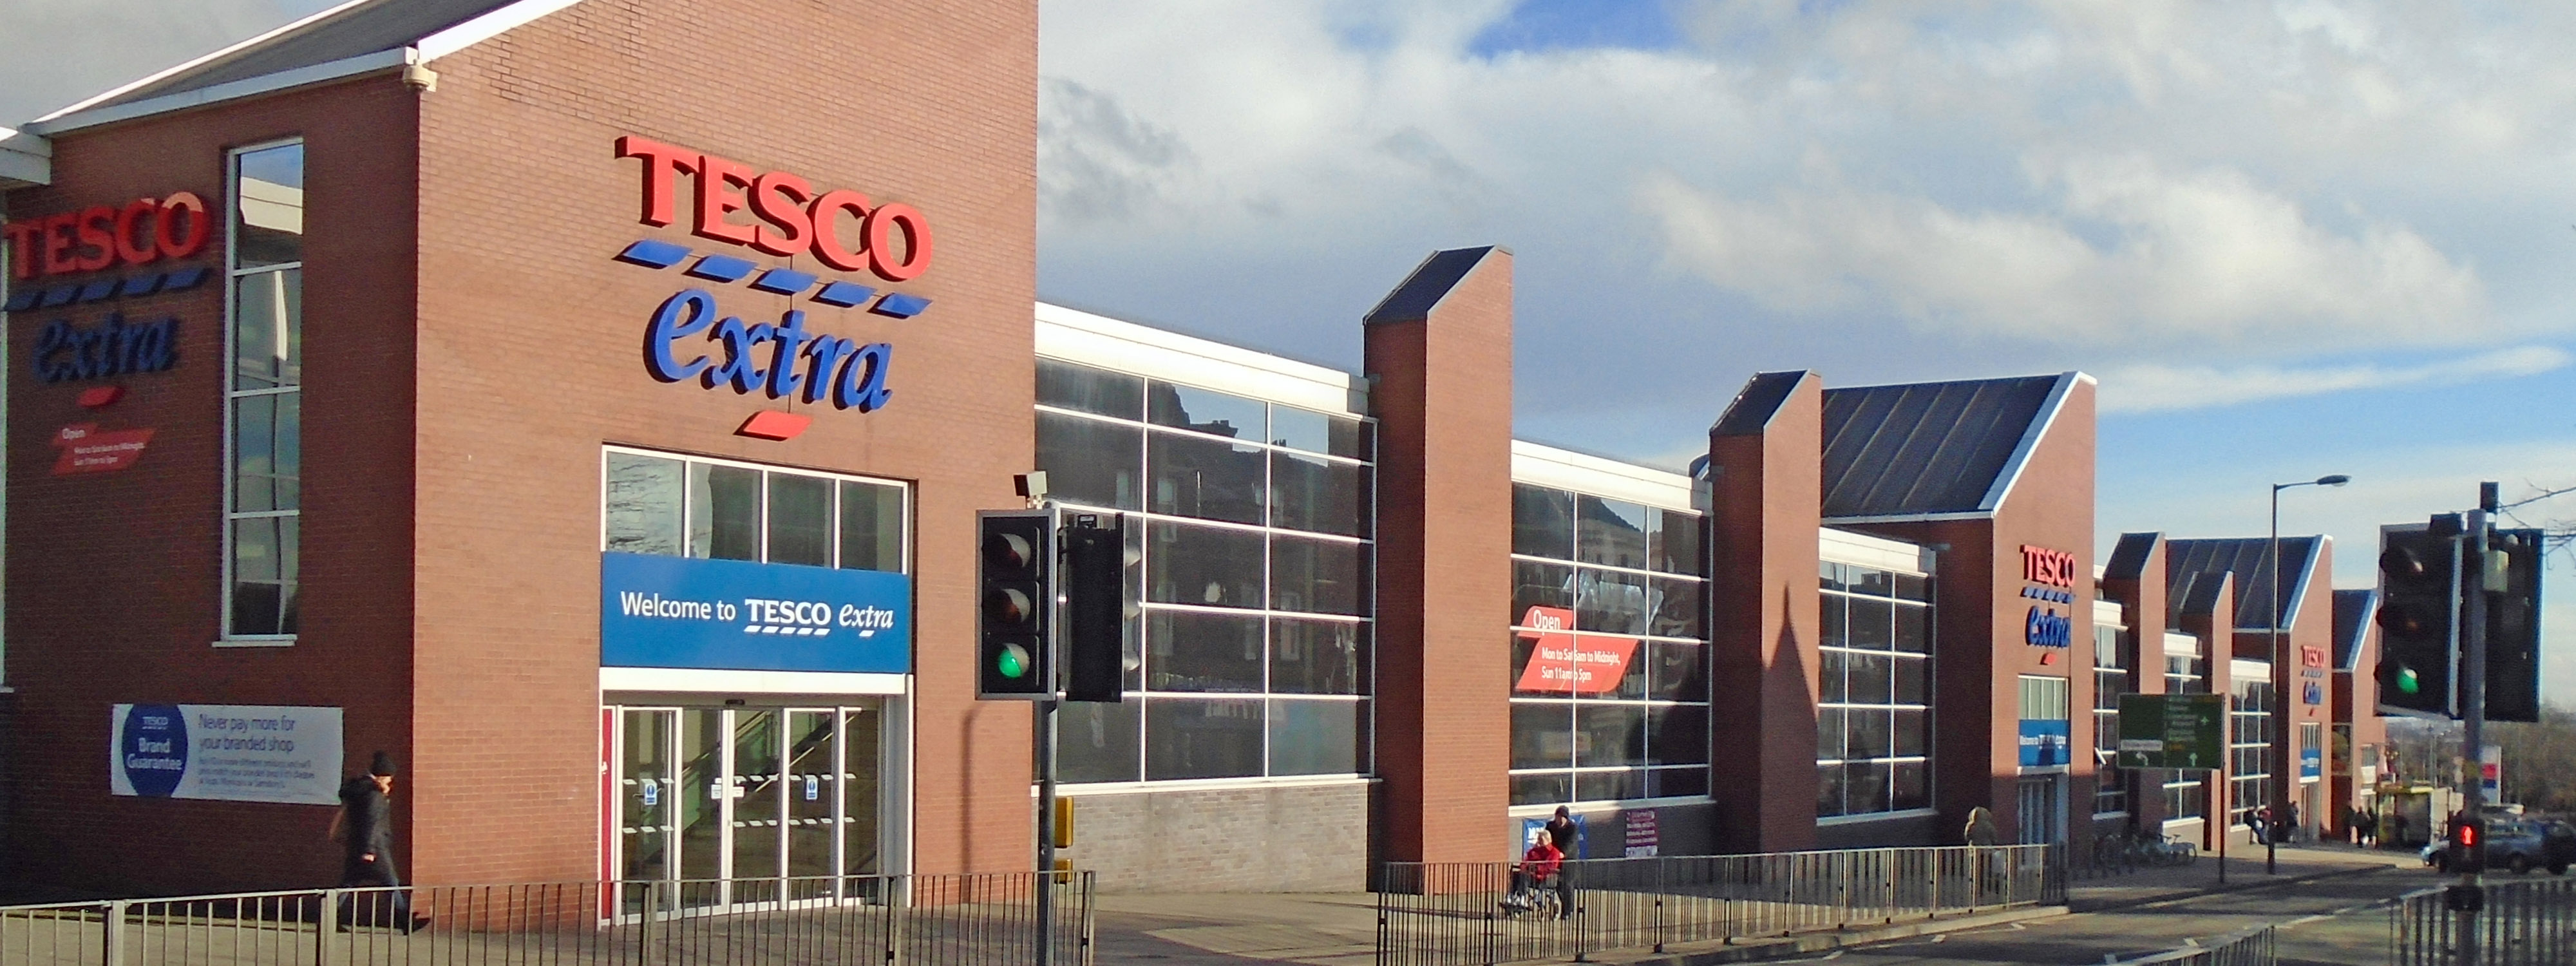 Tesco extra store. Photo: Wikimedia Commons